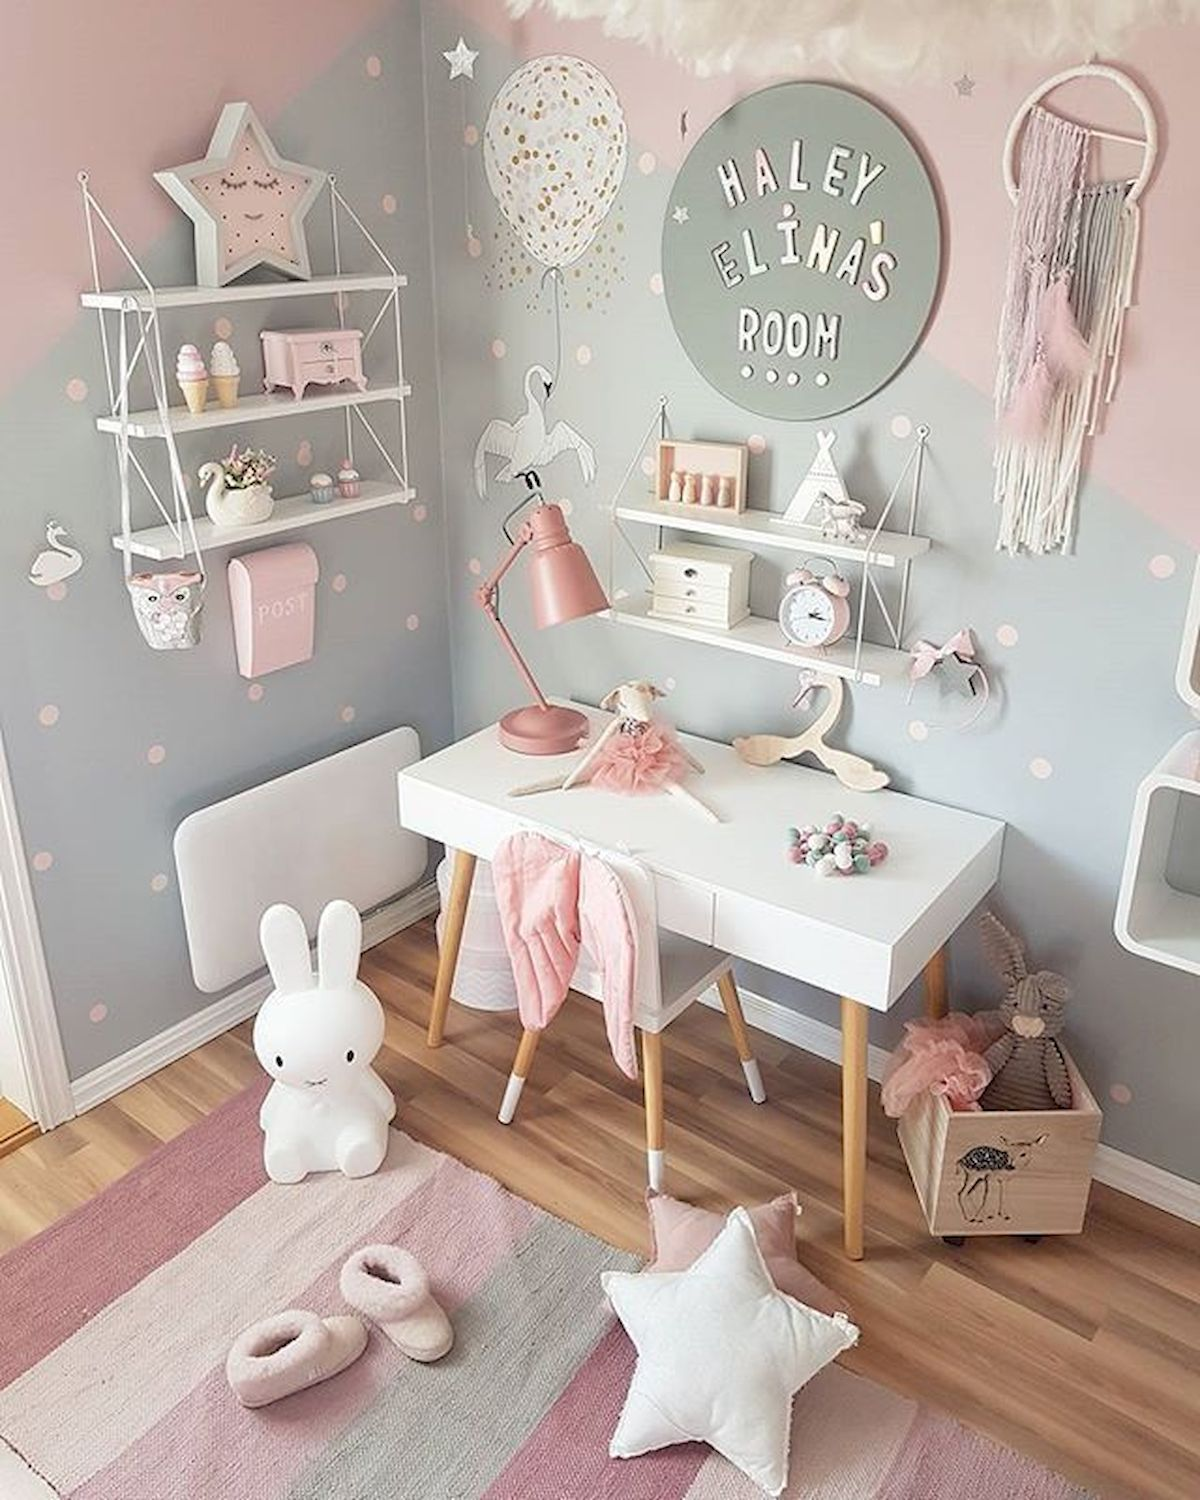 Storage Ideas For Rooms And Children's Playgrounds Girl